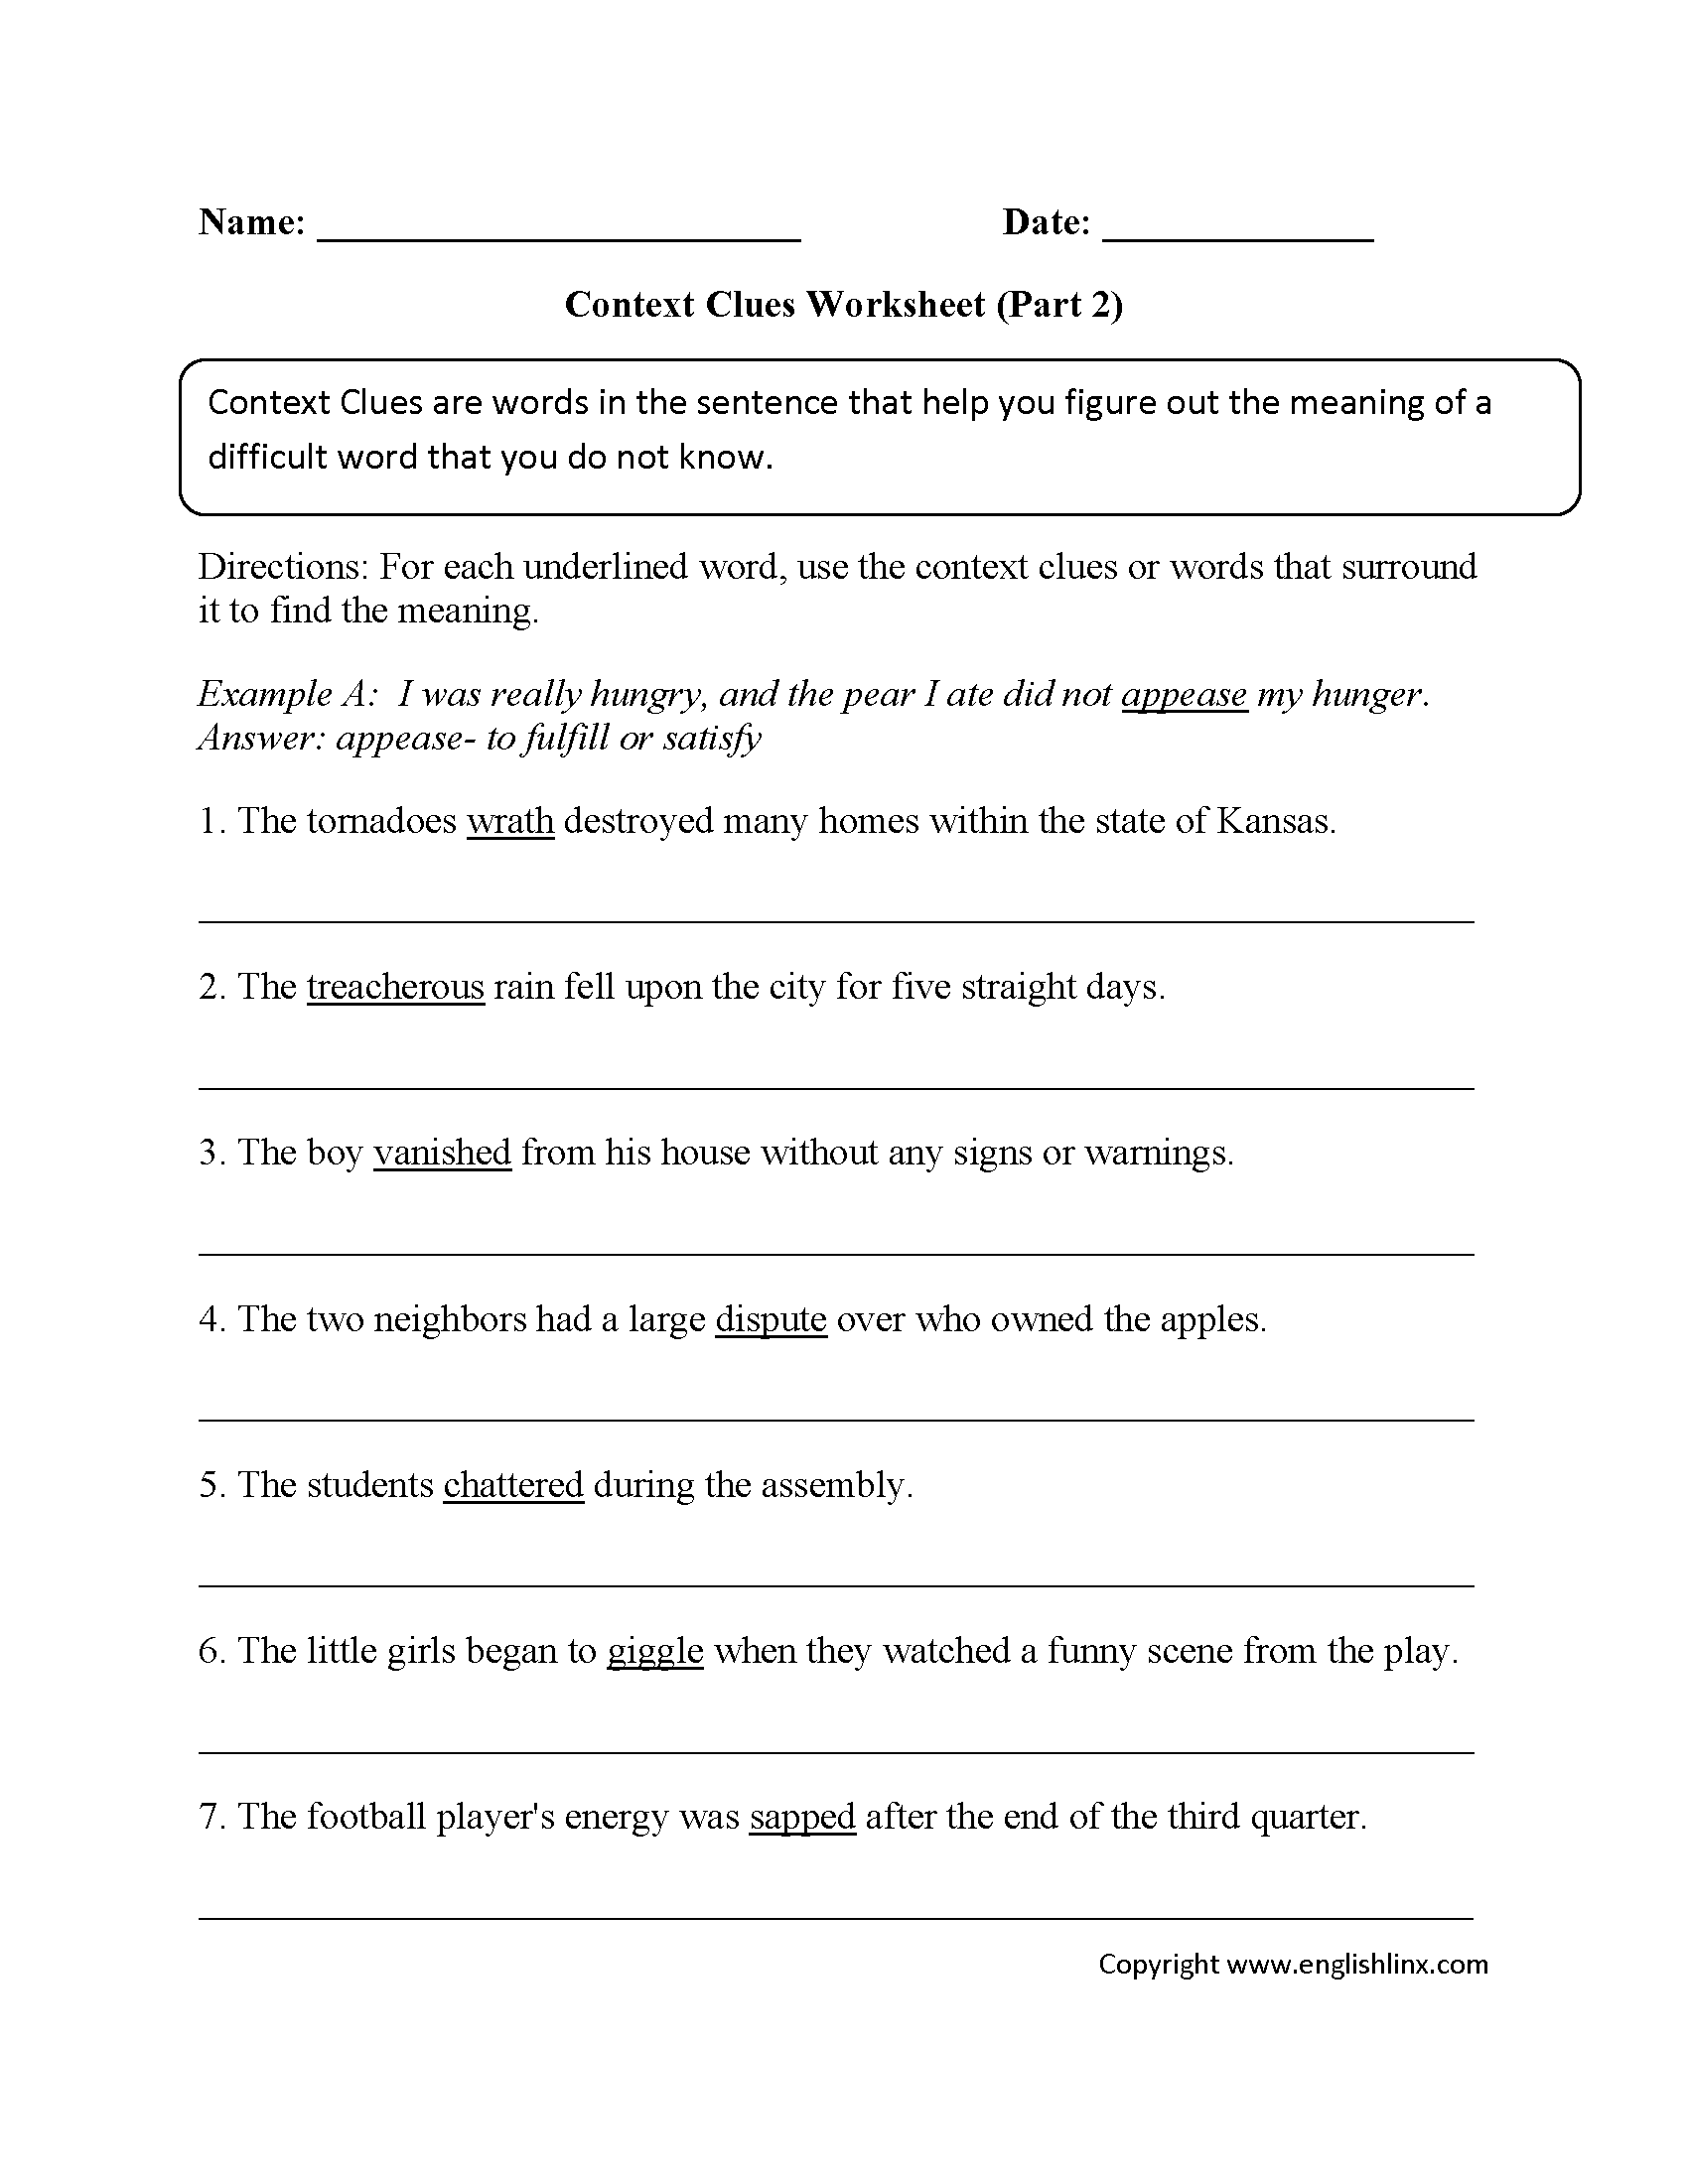 Worksheets Context Clues Worksheets 3rd Grade englishlinx com context clues worksheets part 2 intermediate